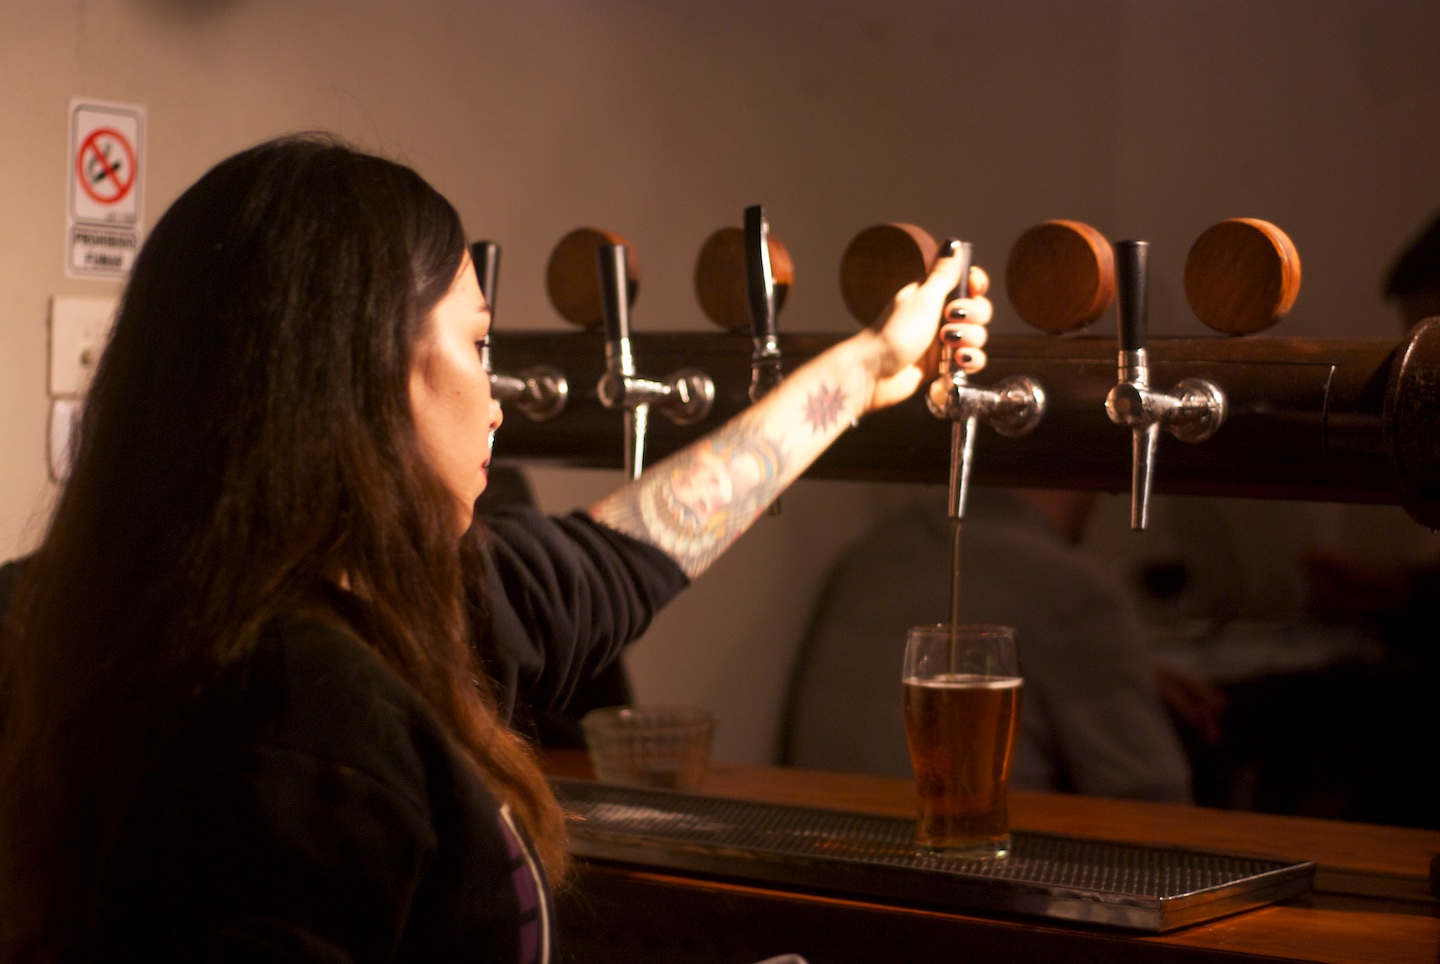 Pulling the draft beer